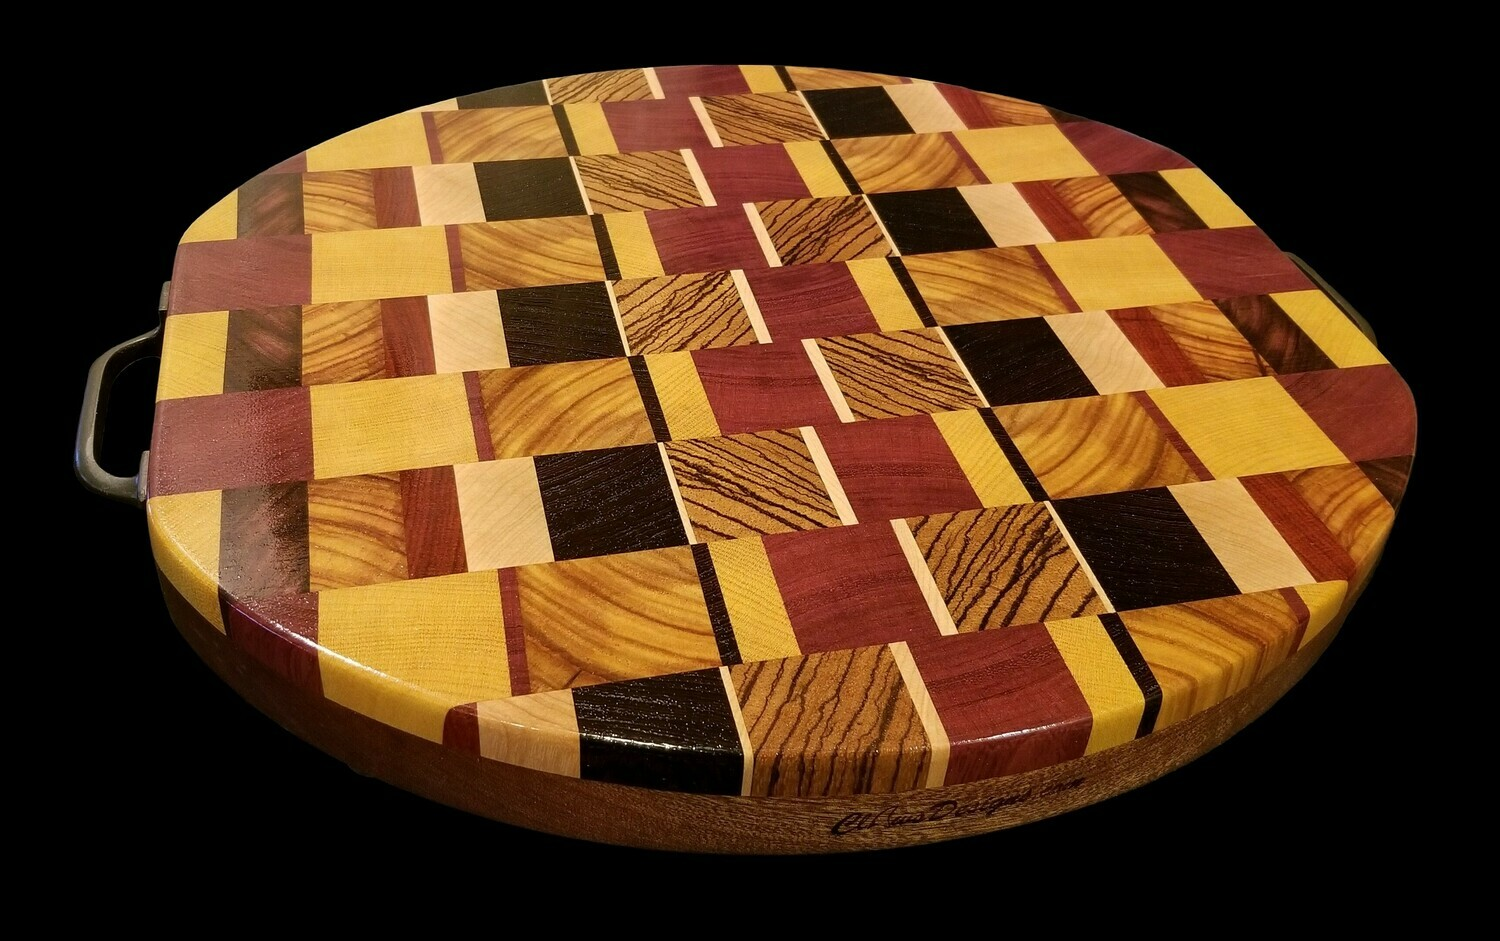 "Cutting Board, 2 Layer, End Grain, 14 1/2"" x 13 1/4"" x 1 1/2"" Thick"